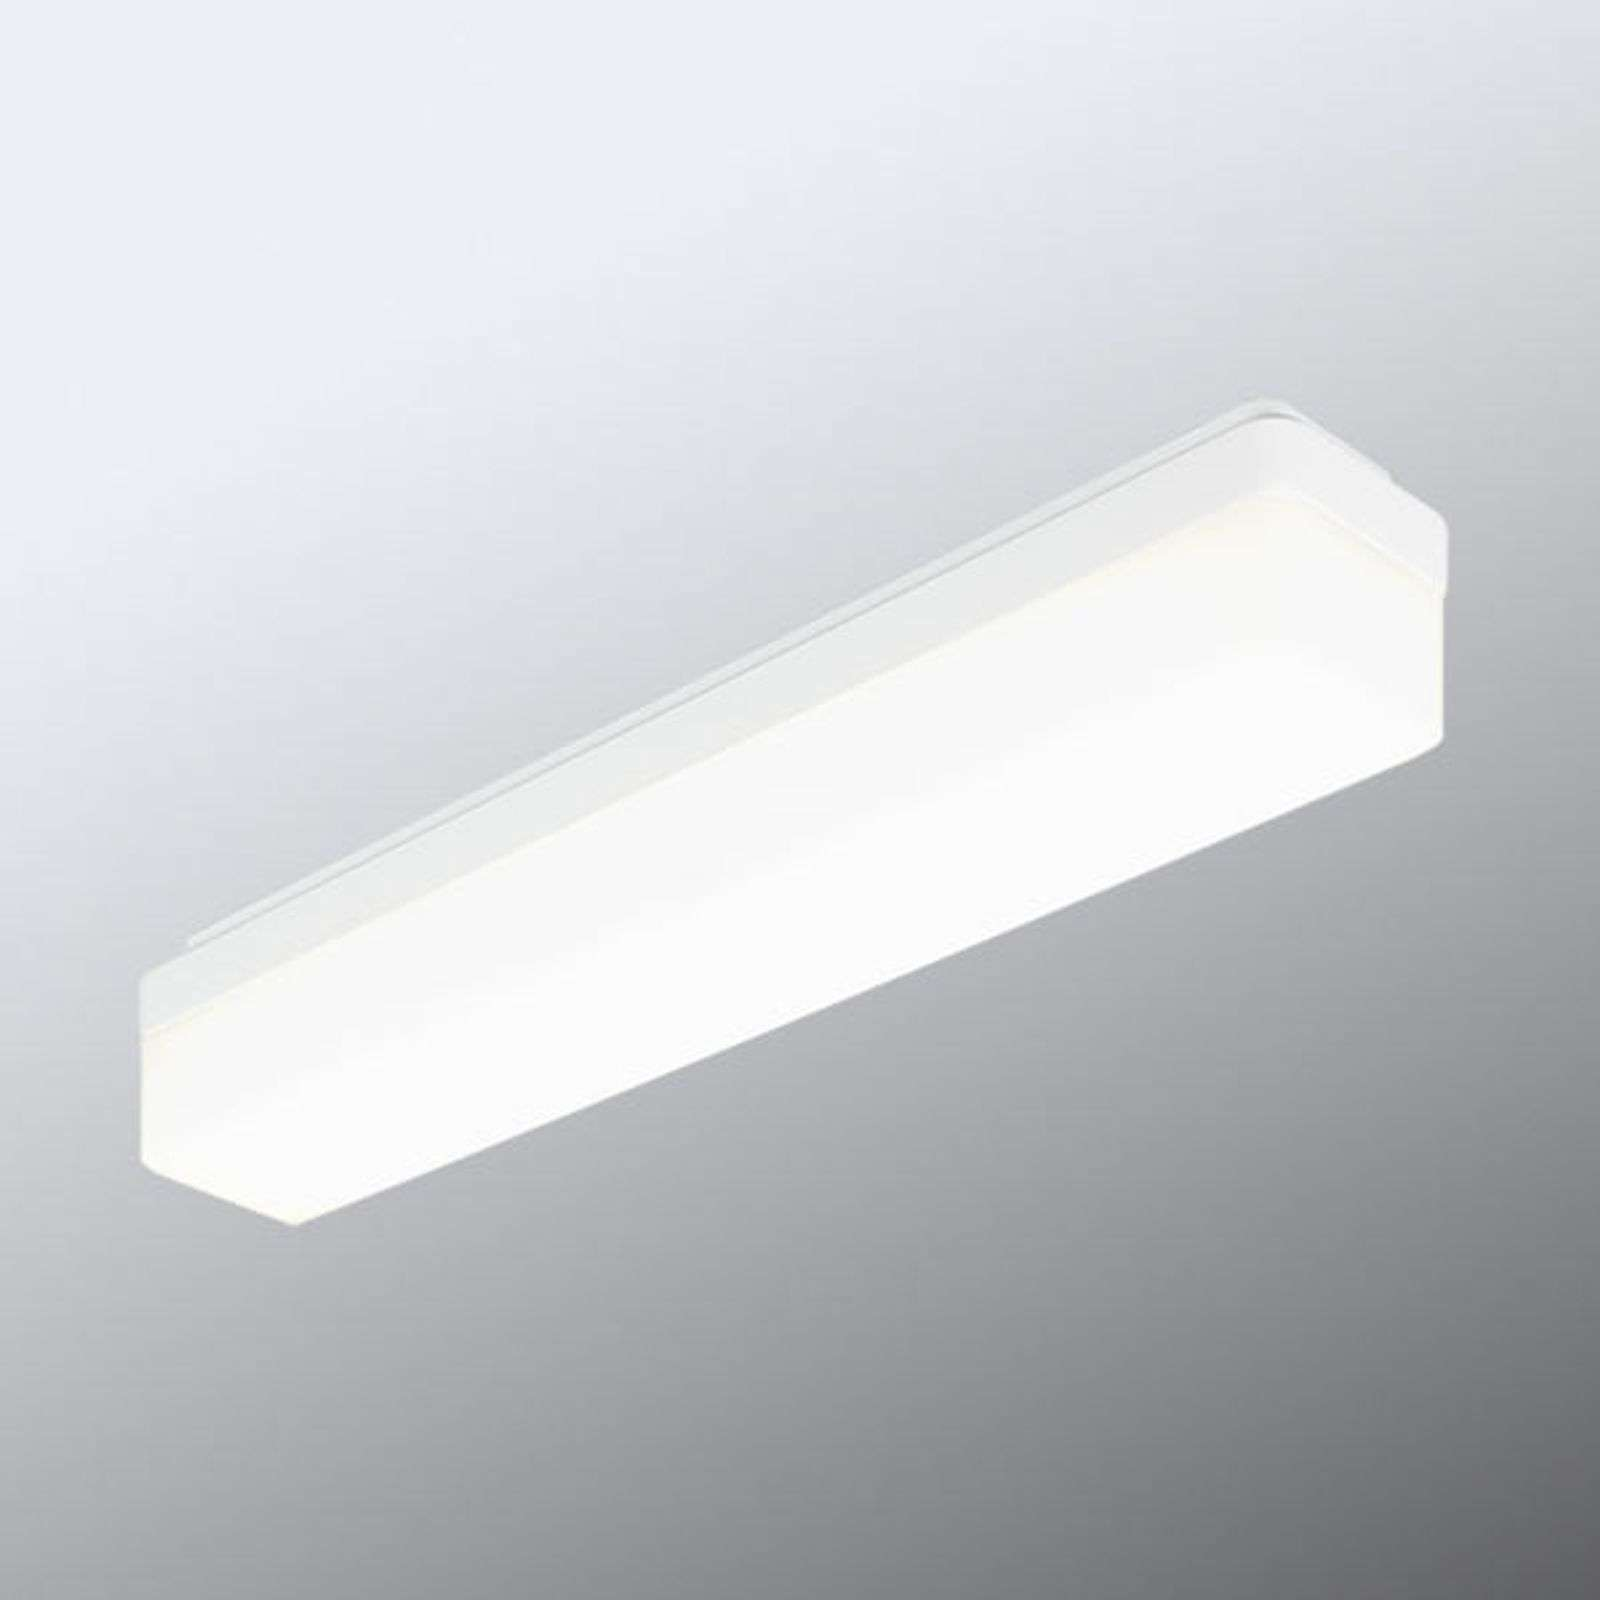 Applique LED A70-W365 1000 HF 14W 3 000 K